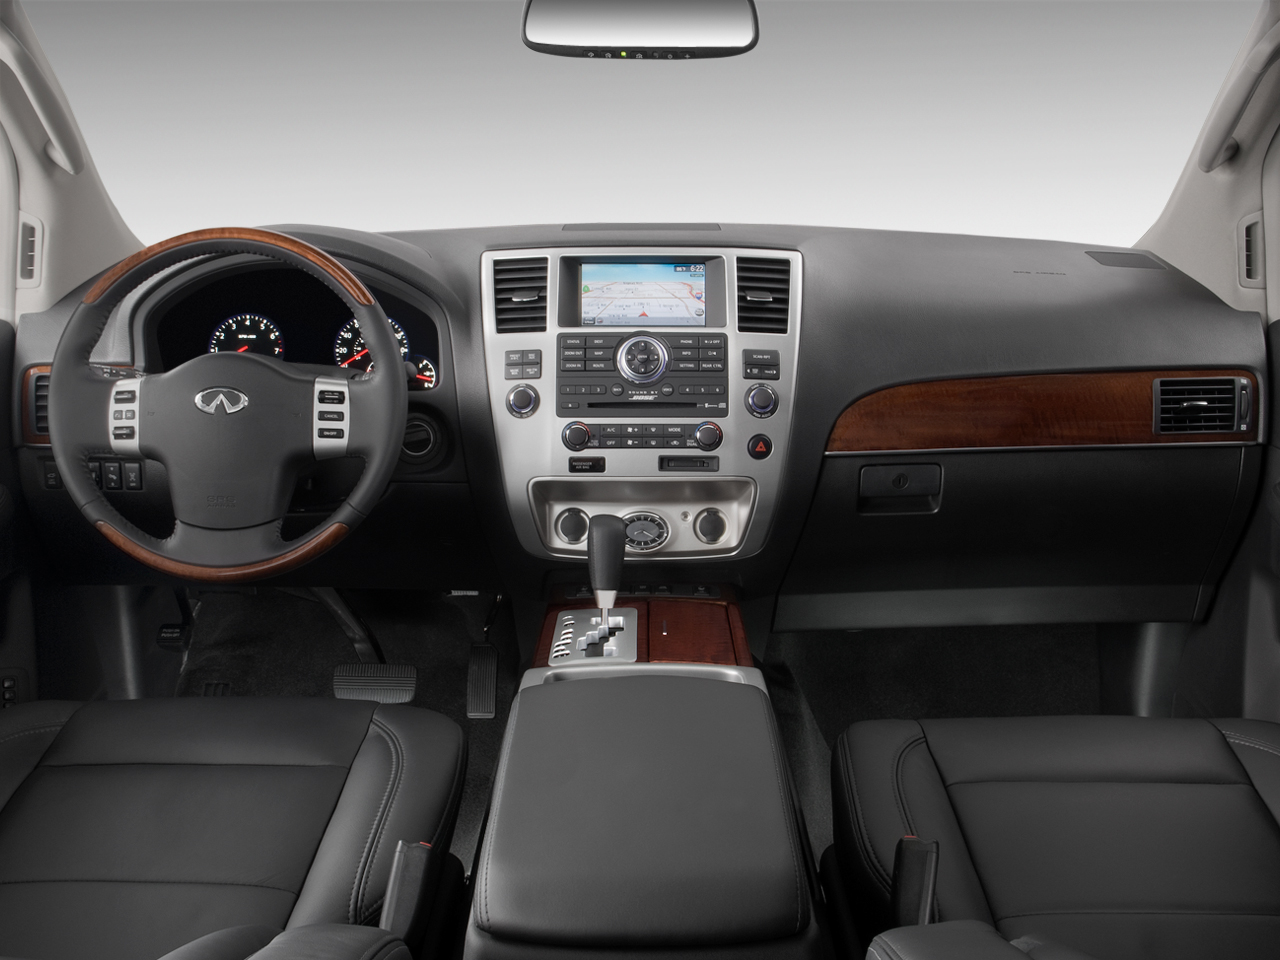 2010 infiniti qx56 information and photos zombiedrive 2010 infiniti qx56 17 infiniti qx56 17 vanachro Image collections